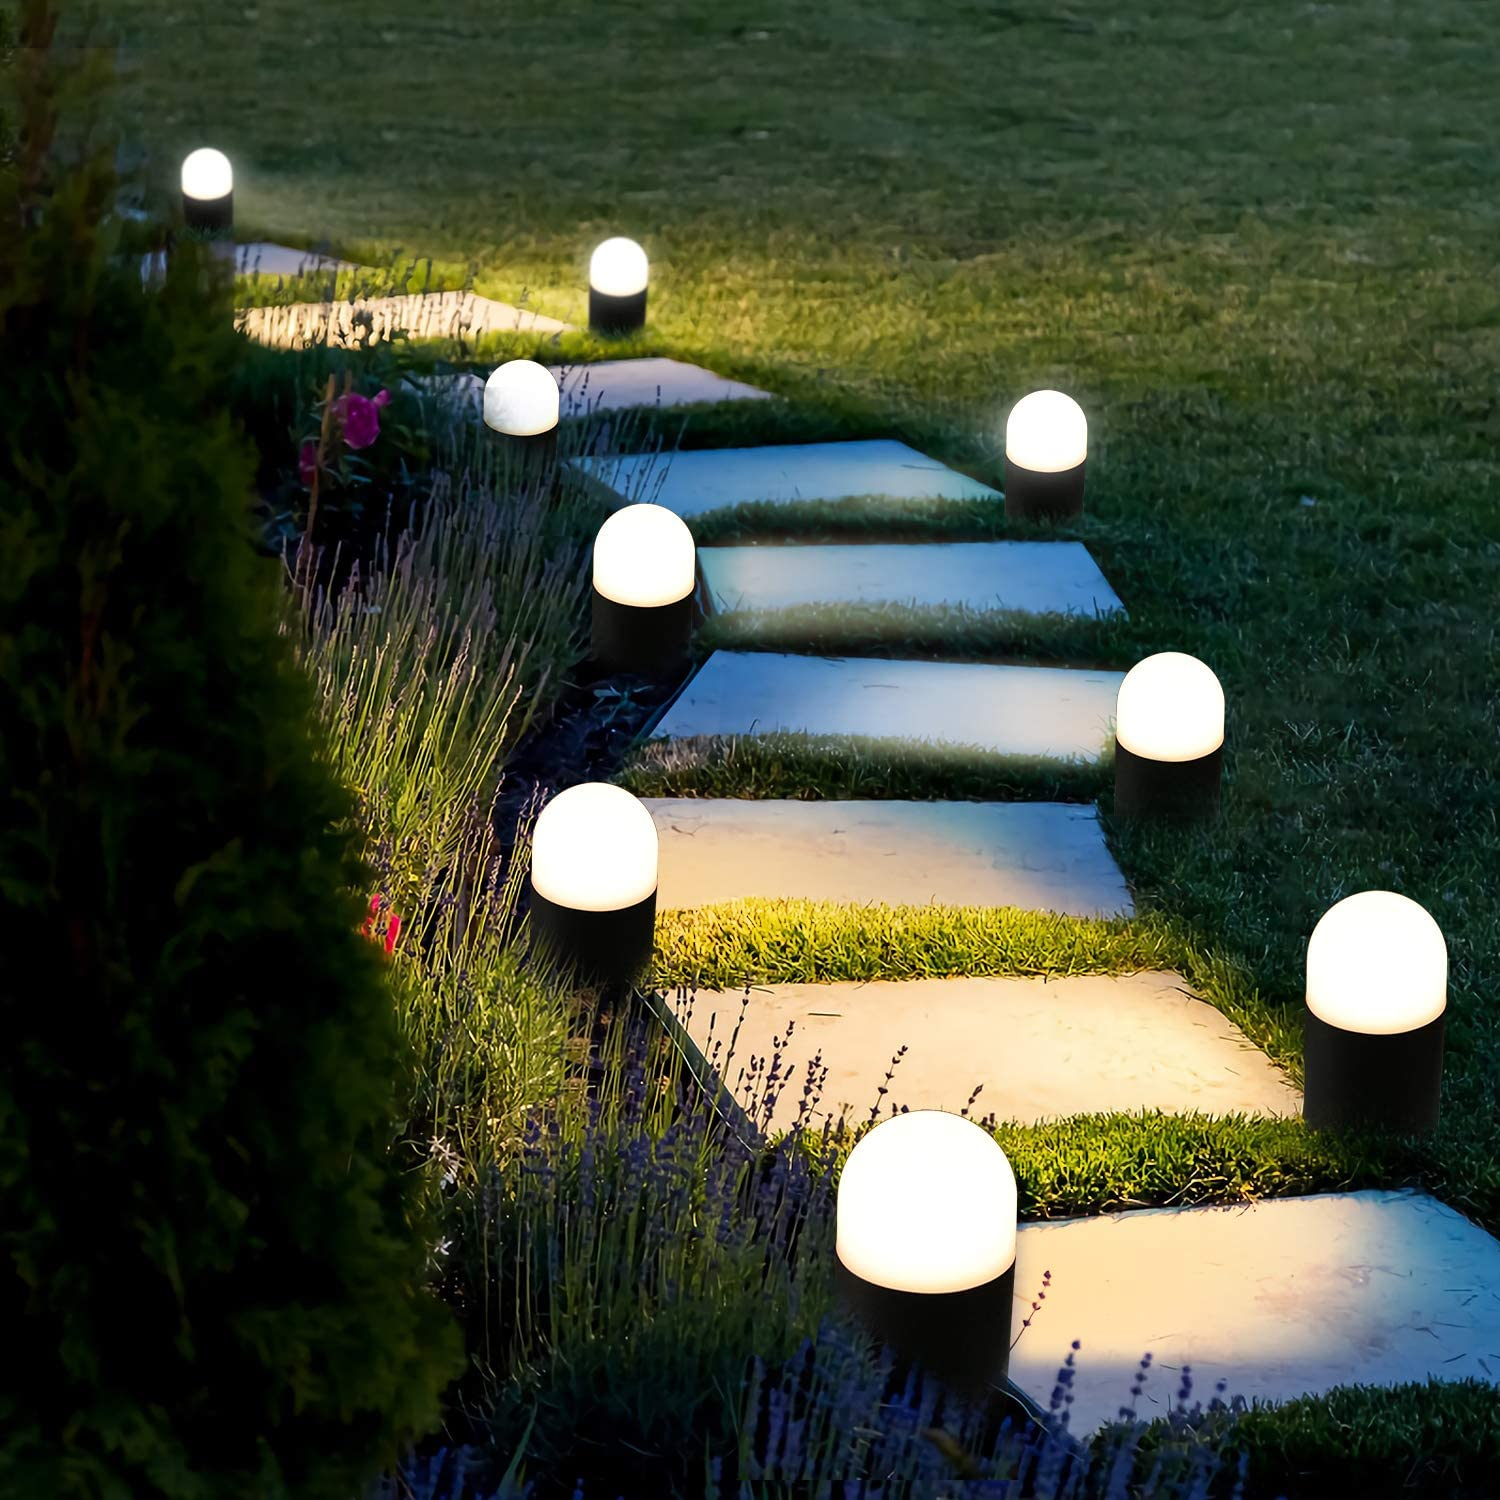 Beezok Outdoor Landscape Path Lights Low Voltage 4 Pack Led Round Bollard Small Garden Lighting Fixture Ip65 Paradise Cast Aluminum Led Walkway Light For Pathway Yard Lawn Driveway Warm White Lamp